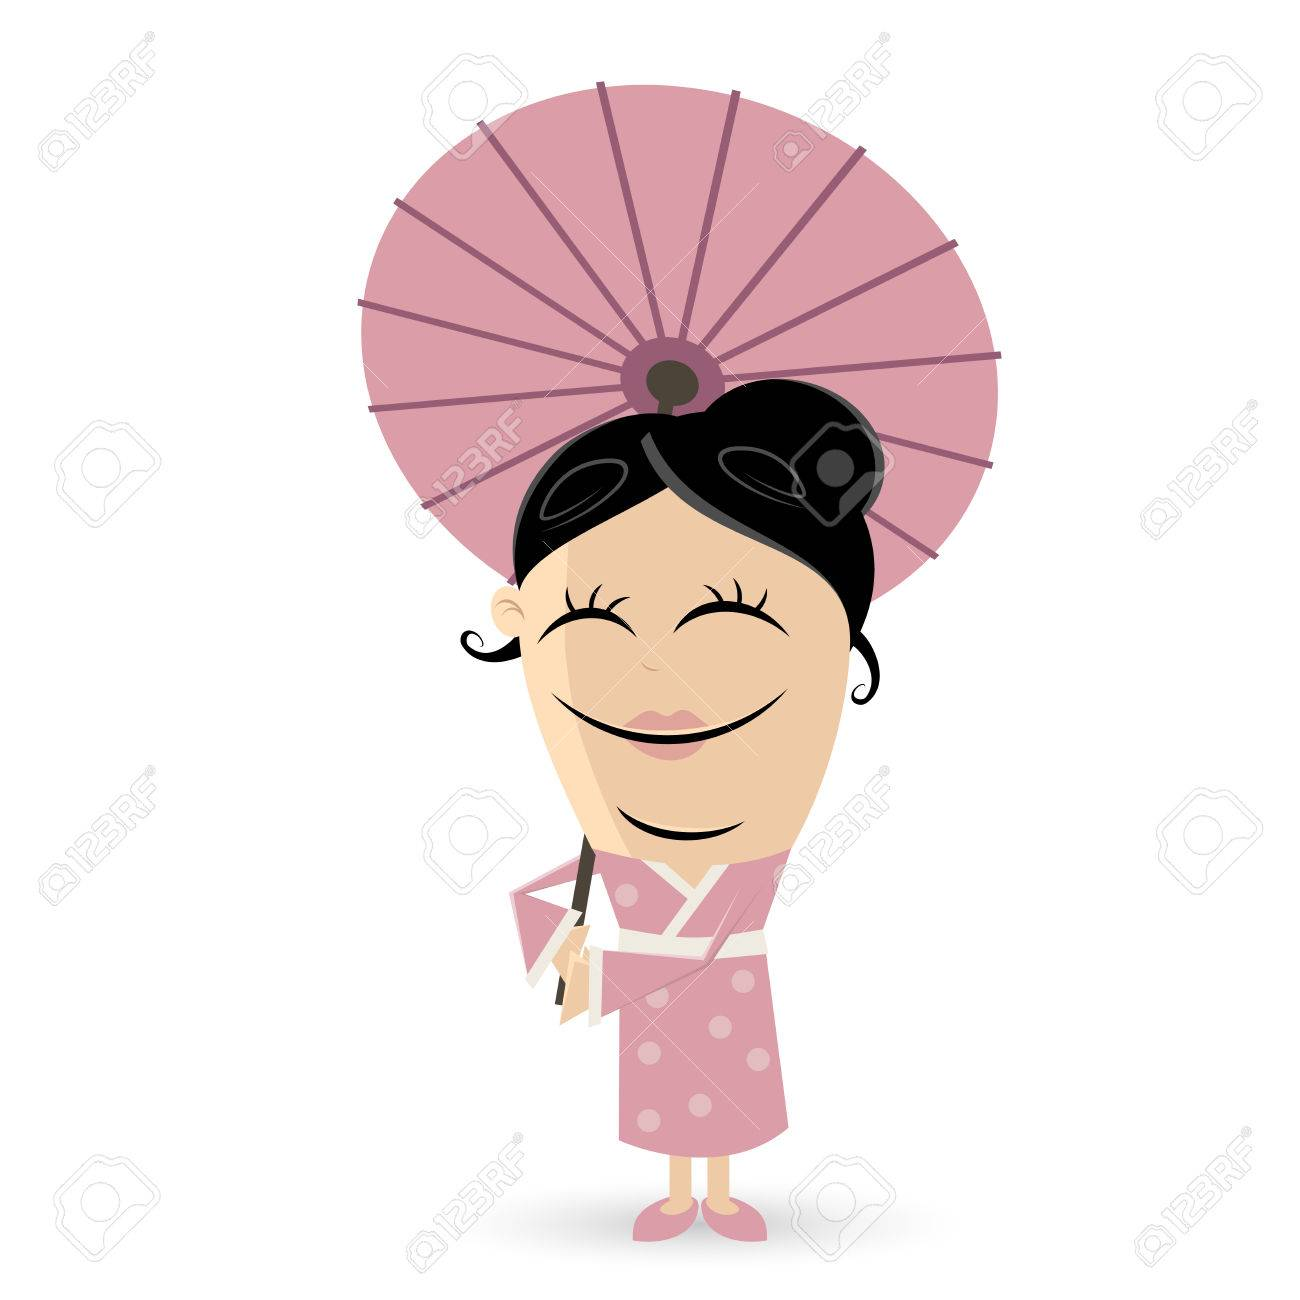 happy asian woman clipart.